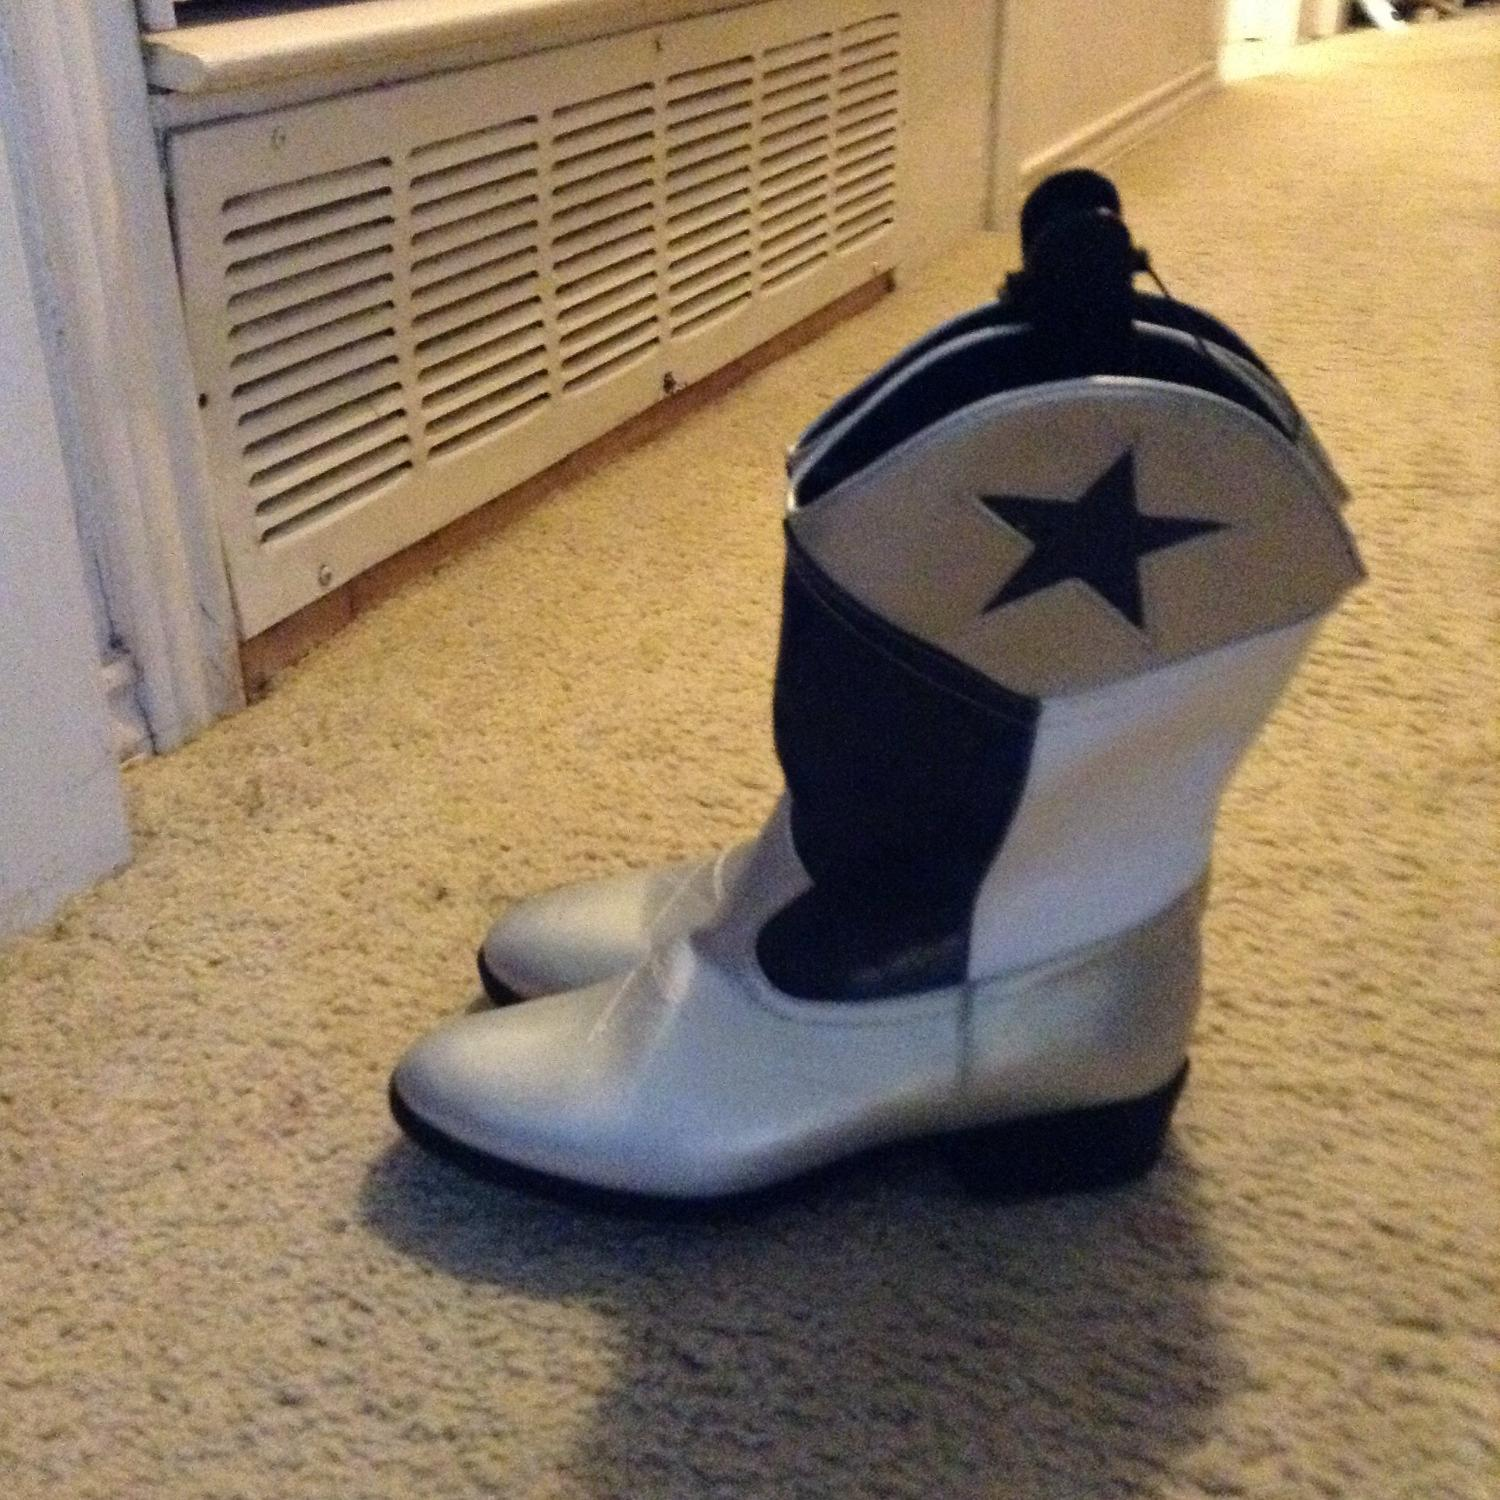 finest selection 5d8e8 34137 reduced to 75 nwt dallas cowboy boots girls 6 or women 7/8